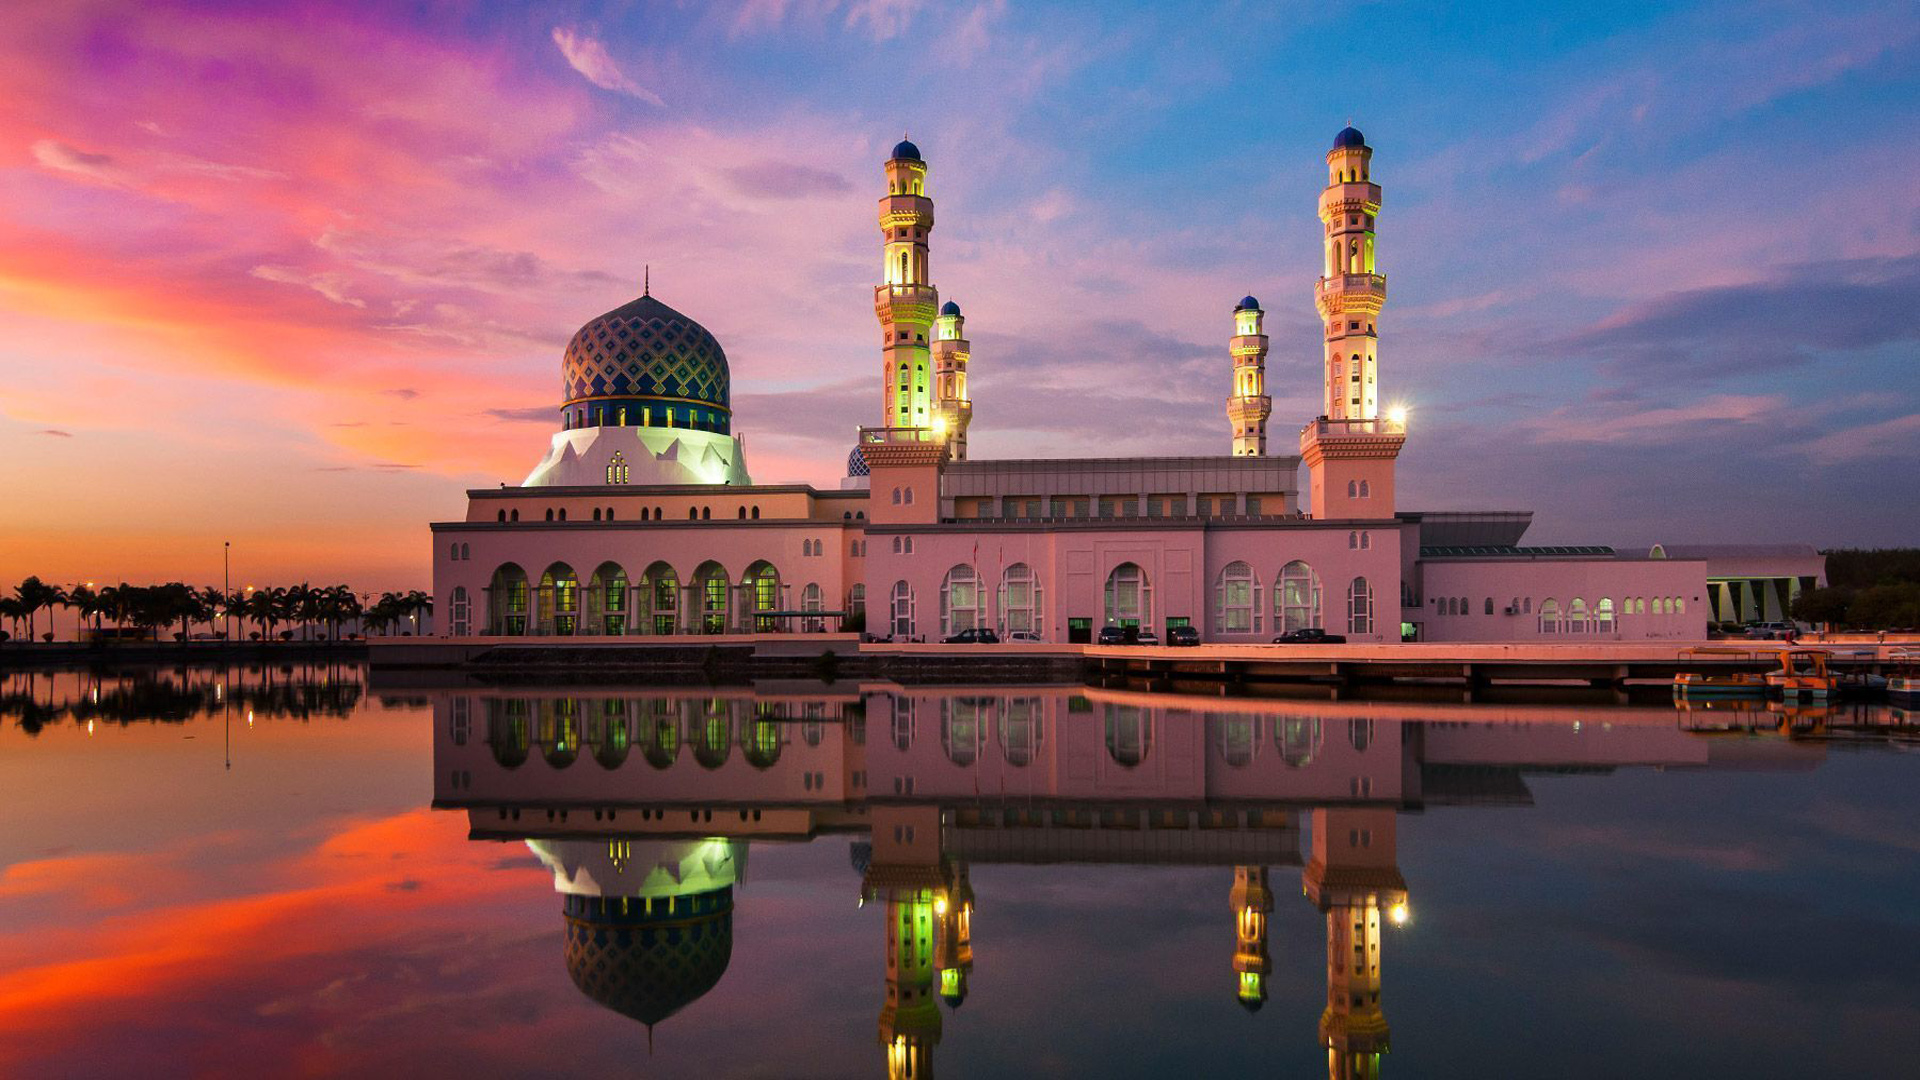 Download New 3d Wallpapers For Pc Kota Kinabalu City Mosque Is The Second Main Mosque In